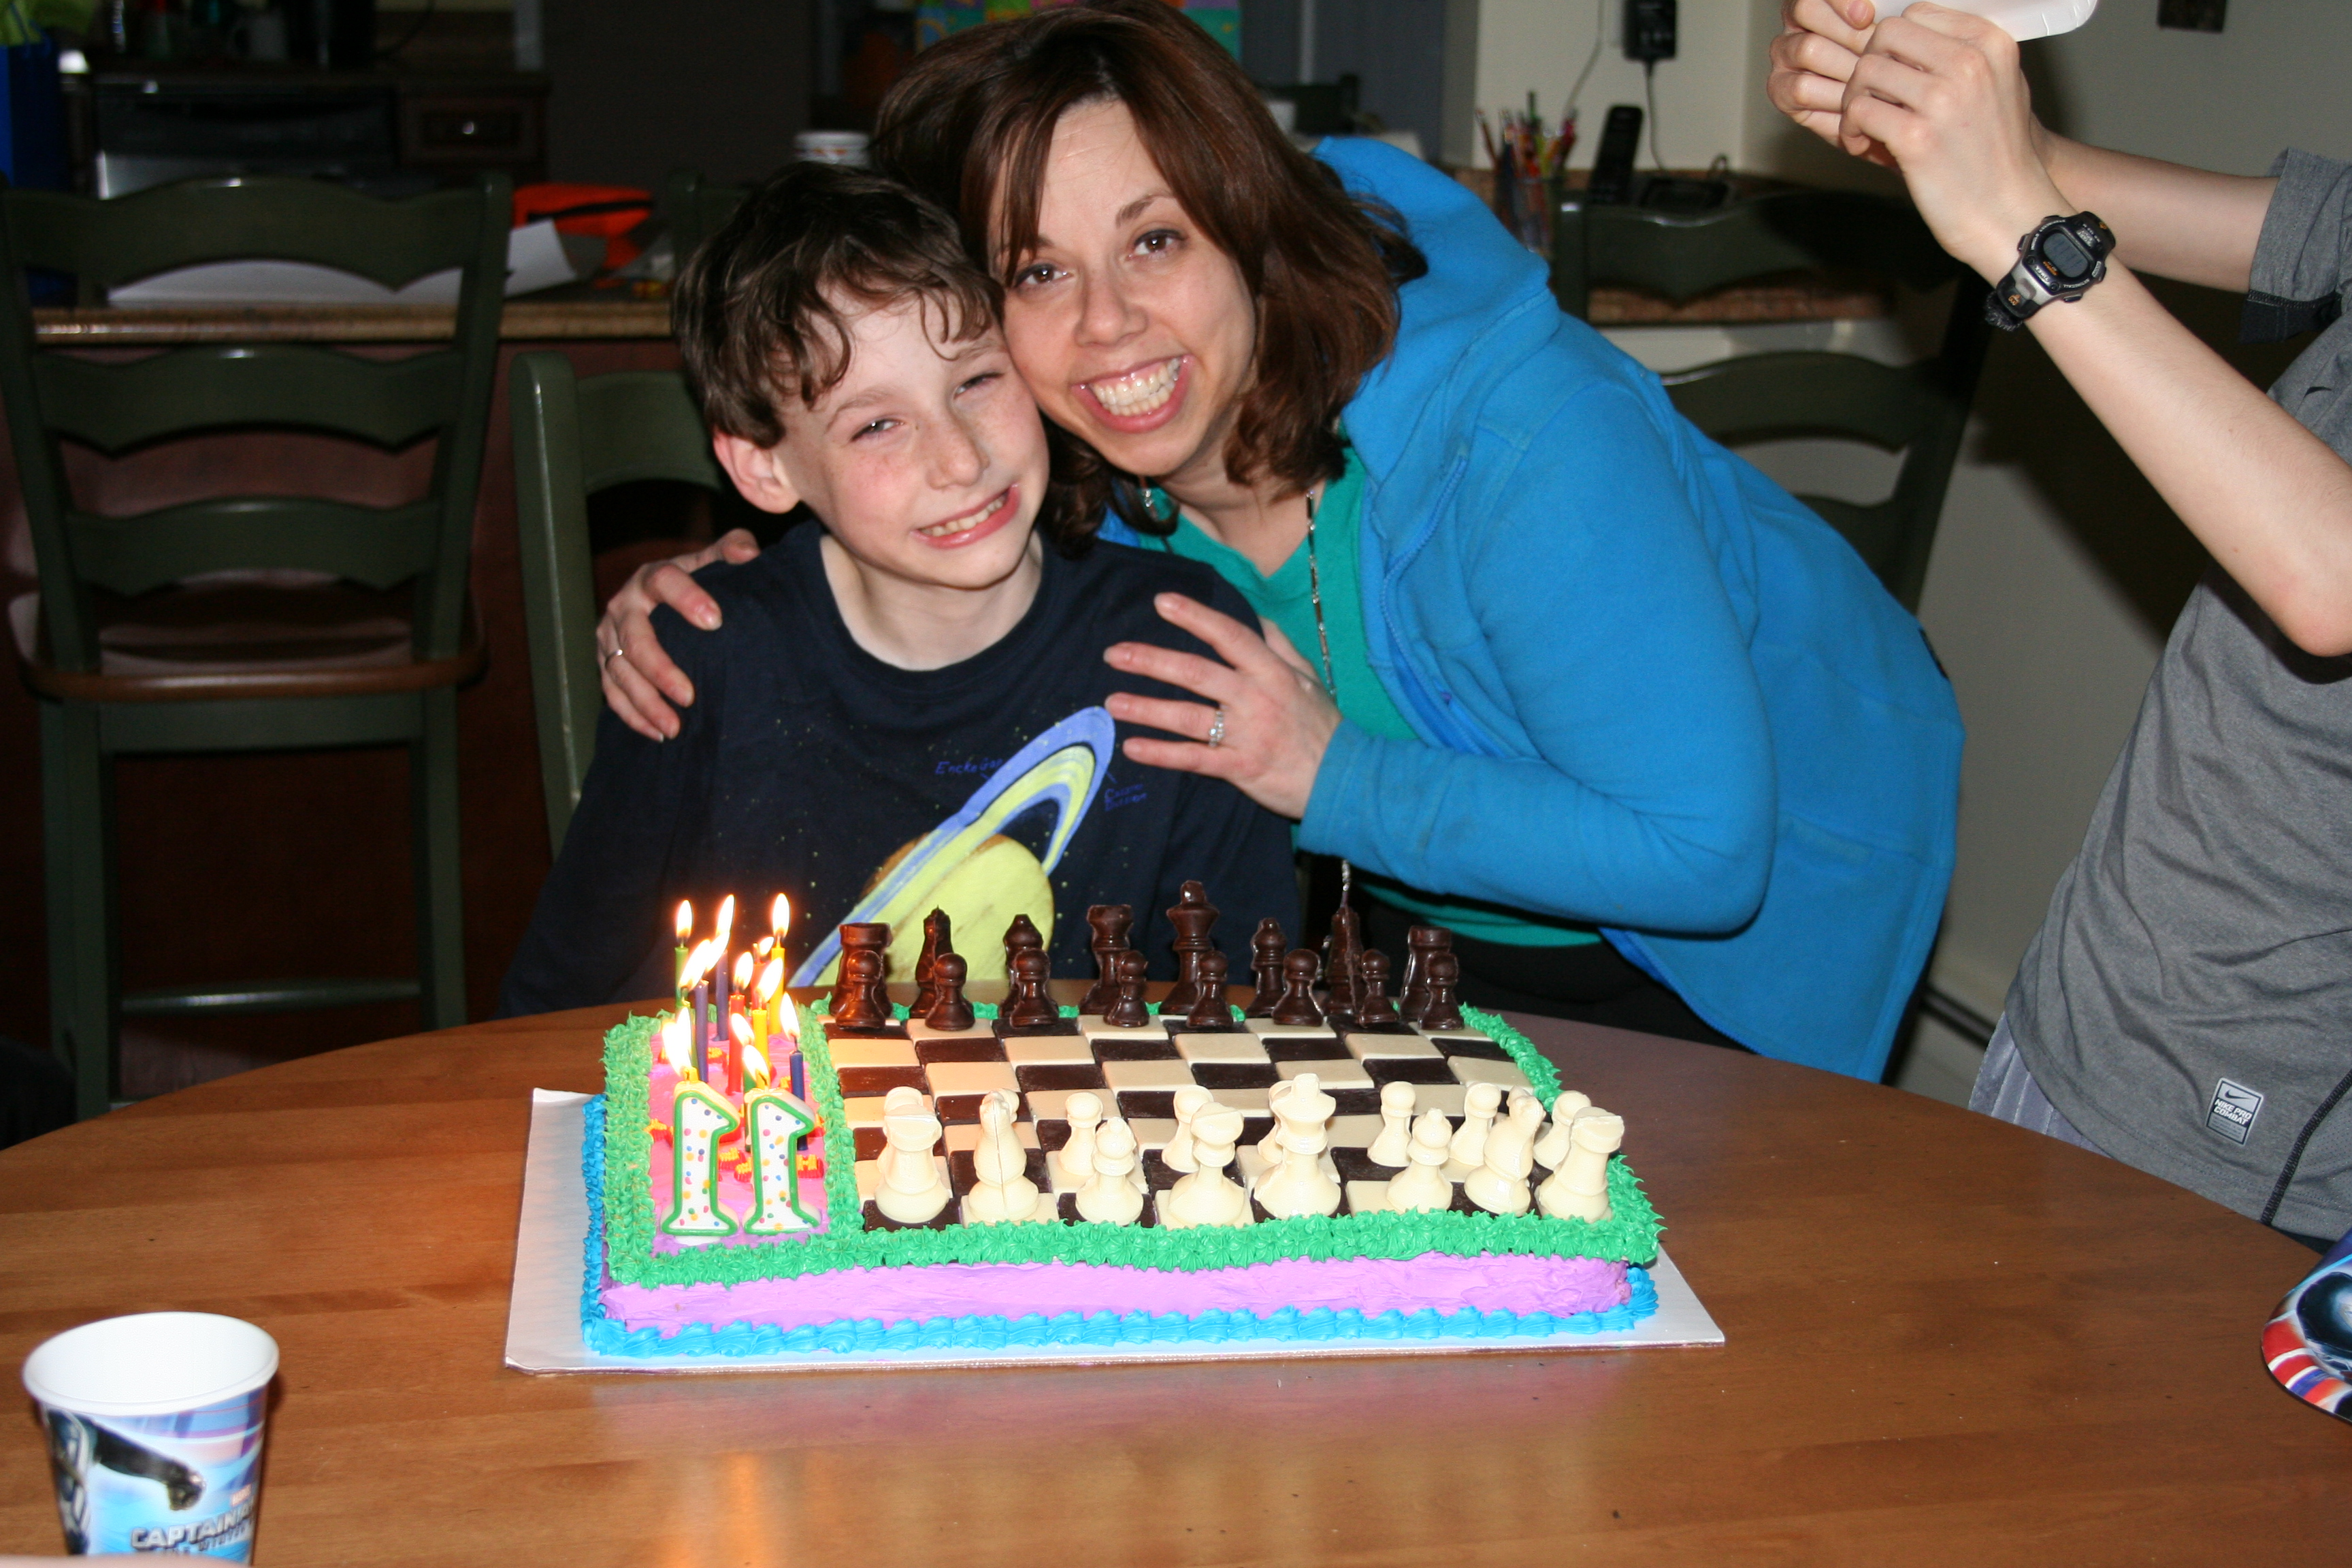 The Cake Queen herself and the Birthday Boy